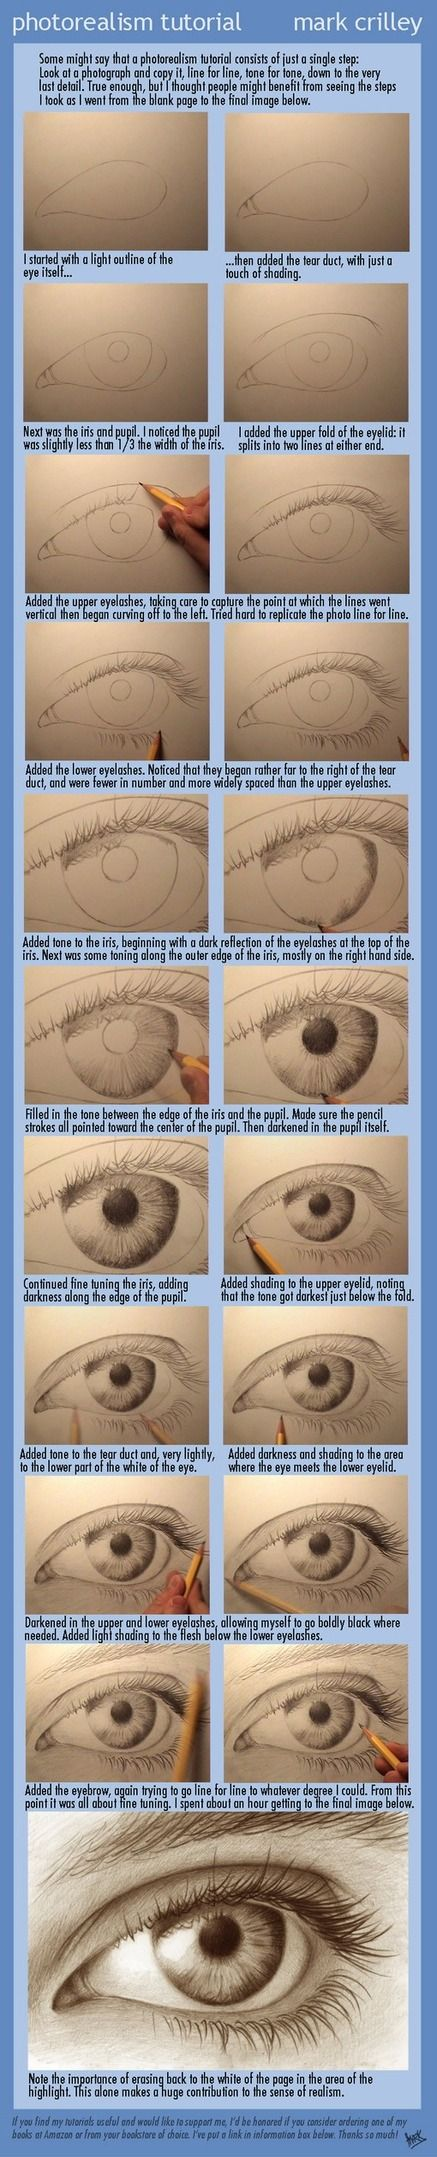 i can't draw but i can follow instructions.... this breaks it down into easy steps for drawing a fantastically realistic eye